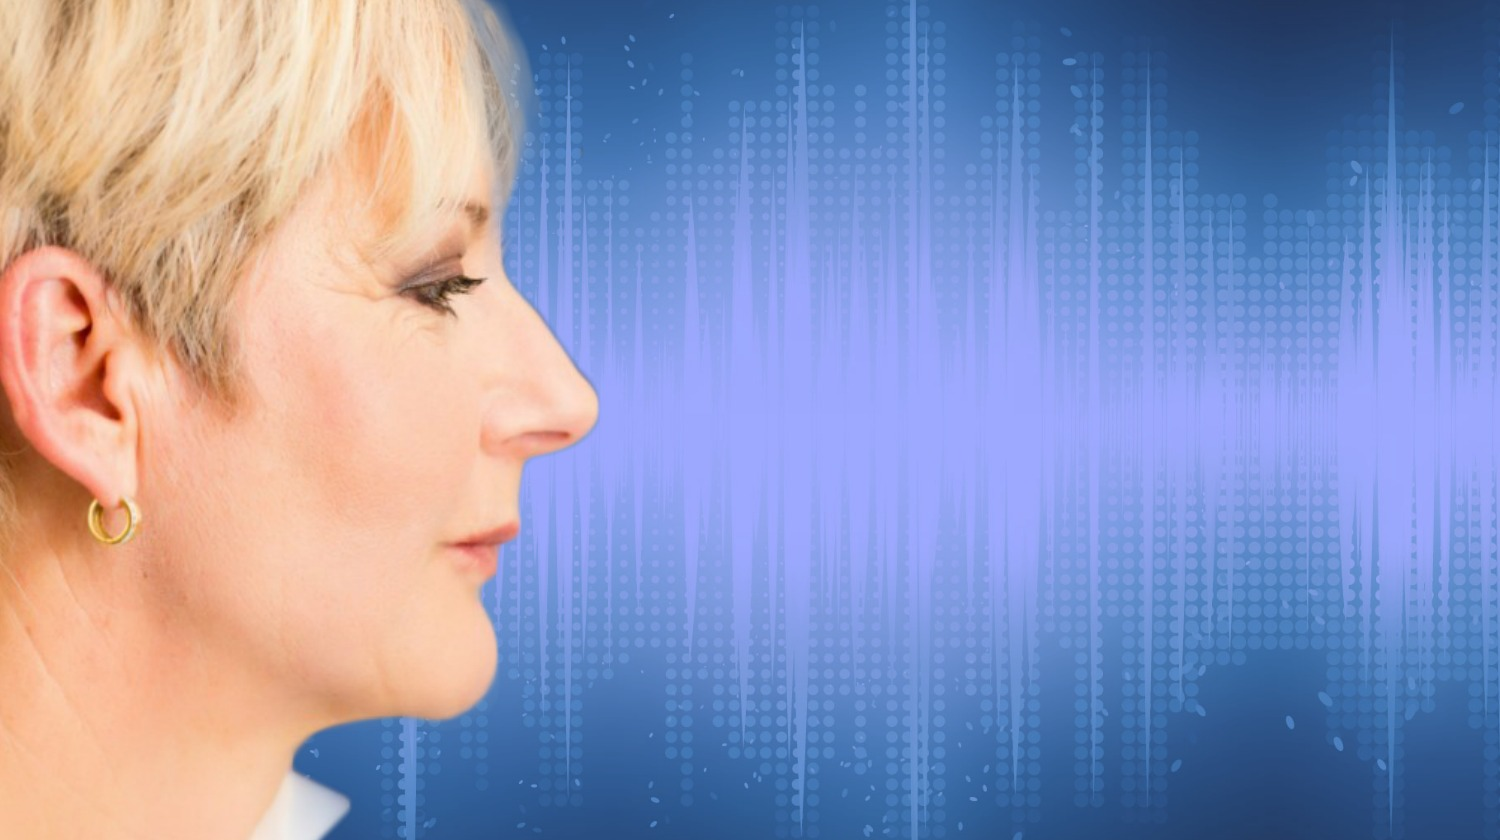 Have Satisfying Conversations with Those Experiencing Hearing Loss